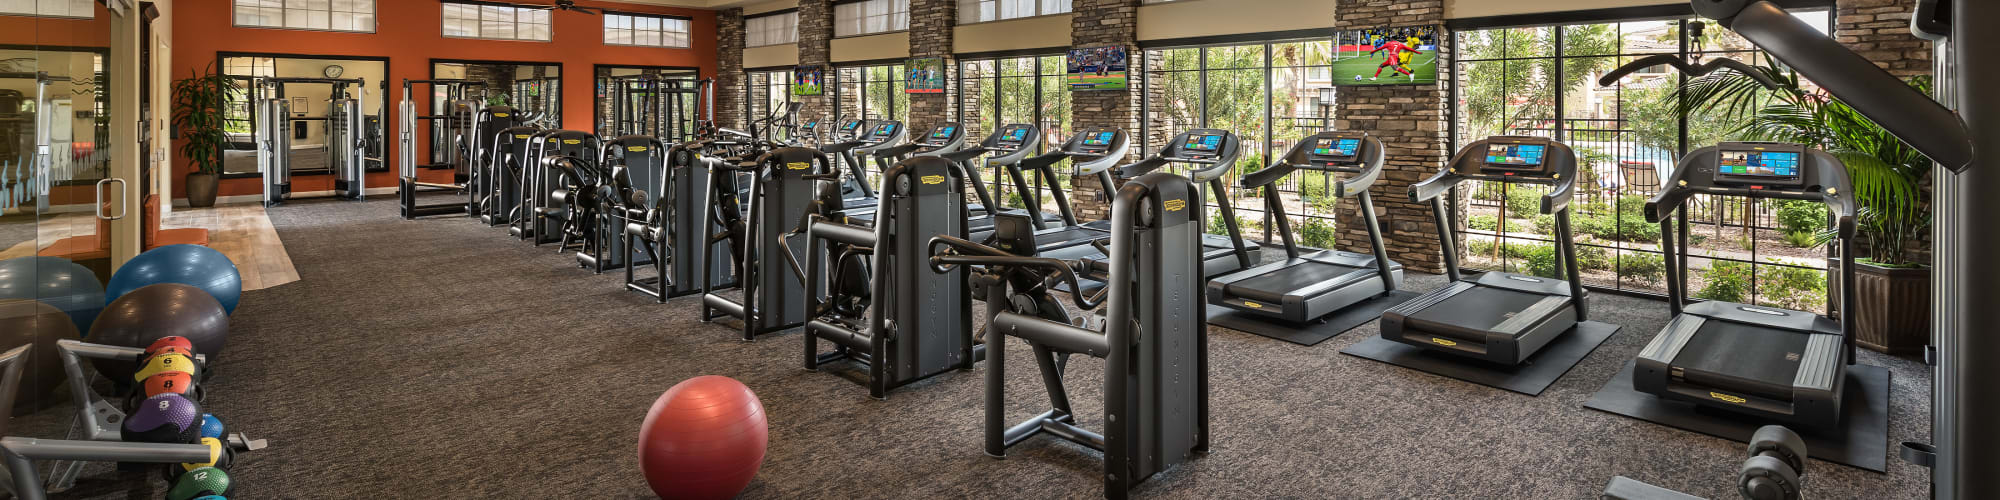 Amenities at San Valencia in Chandler, Arizona